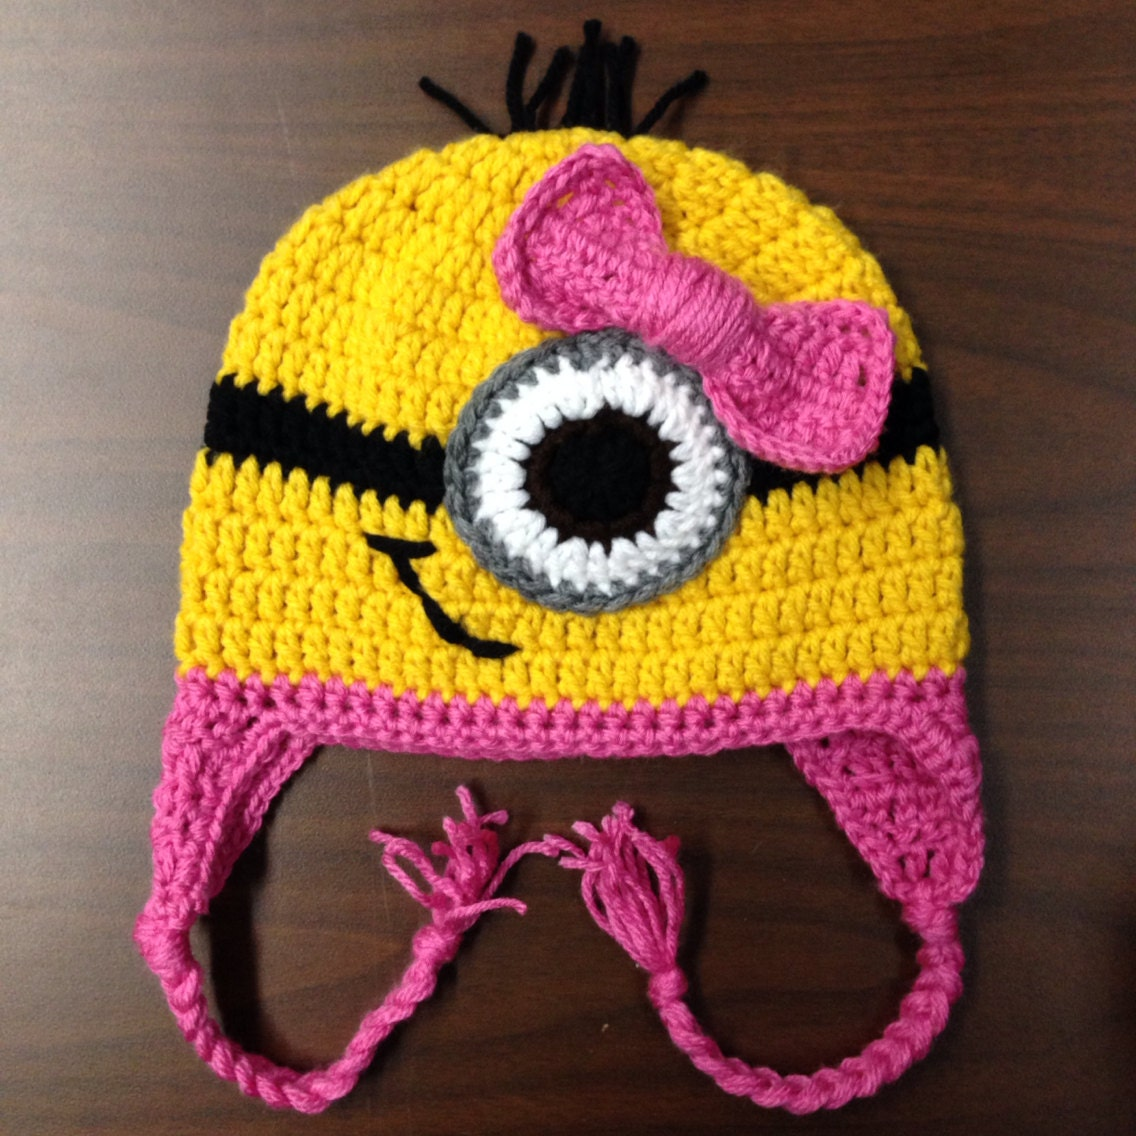 Free Crochet Pattern For Girl Minion Hat : Crochet Baby Girl Minion Hat - Sizes Newborn to 12 Months